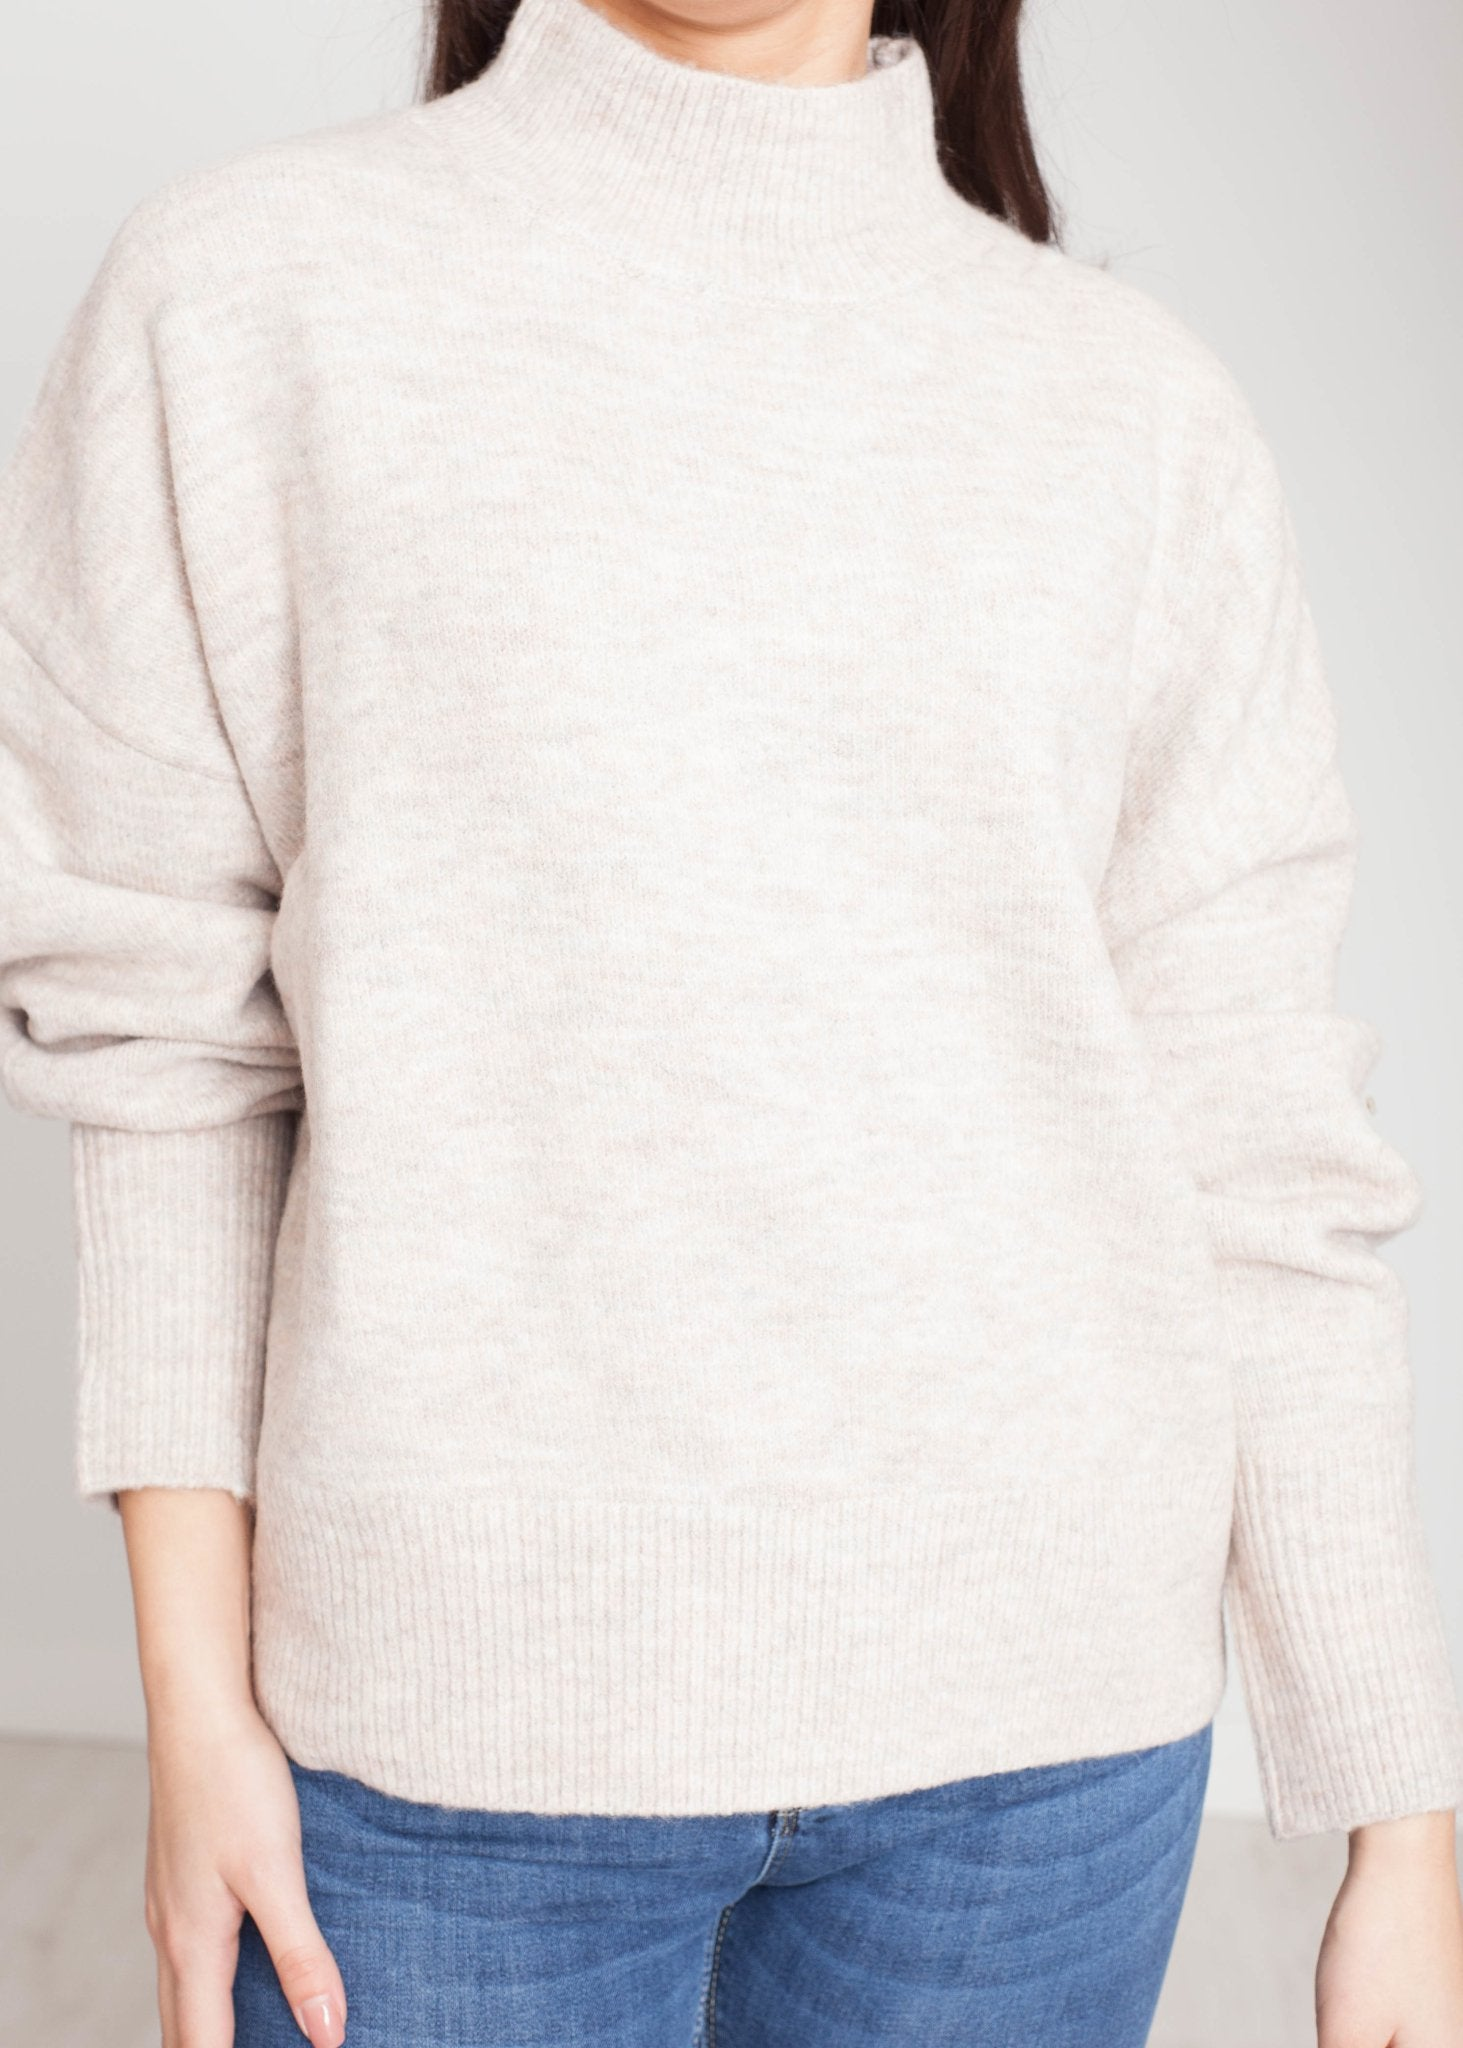 Elsa Knit Jumper In Pink Mix - The Walk in Wardrobe